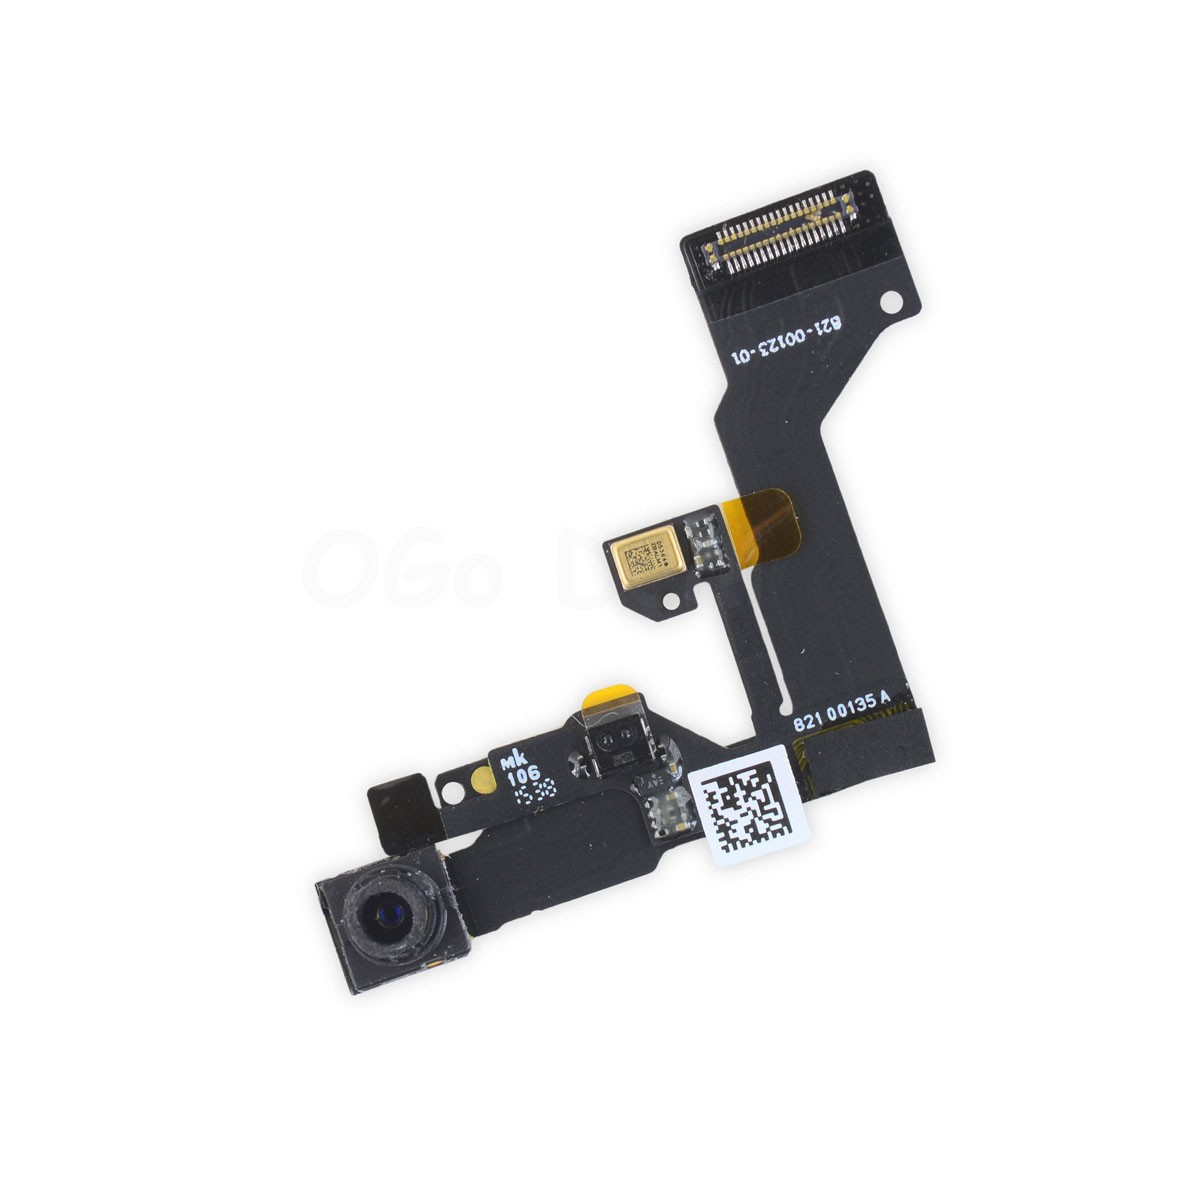 buy online 2a8a0 fa5cb For Apple iPhone 6S Front Camera with Sensor Proximity Flex Cable  Replacement